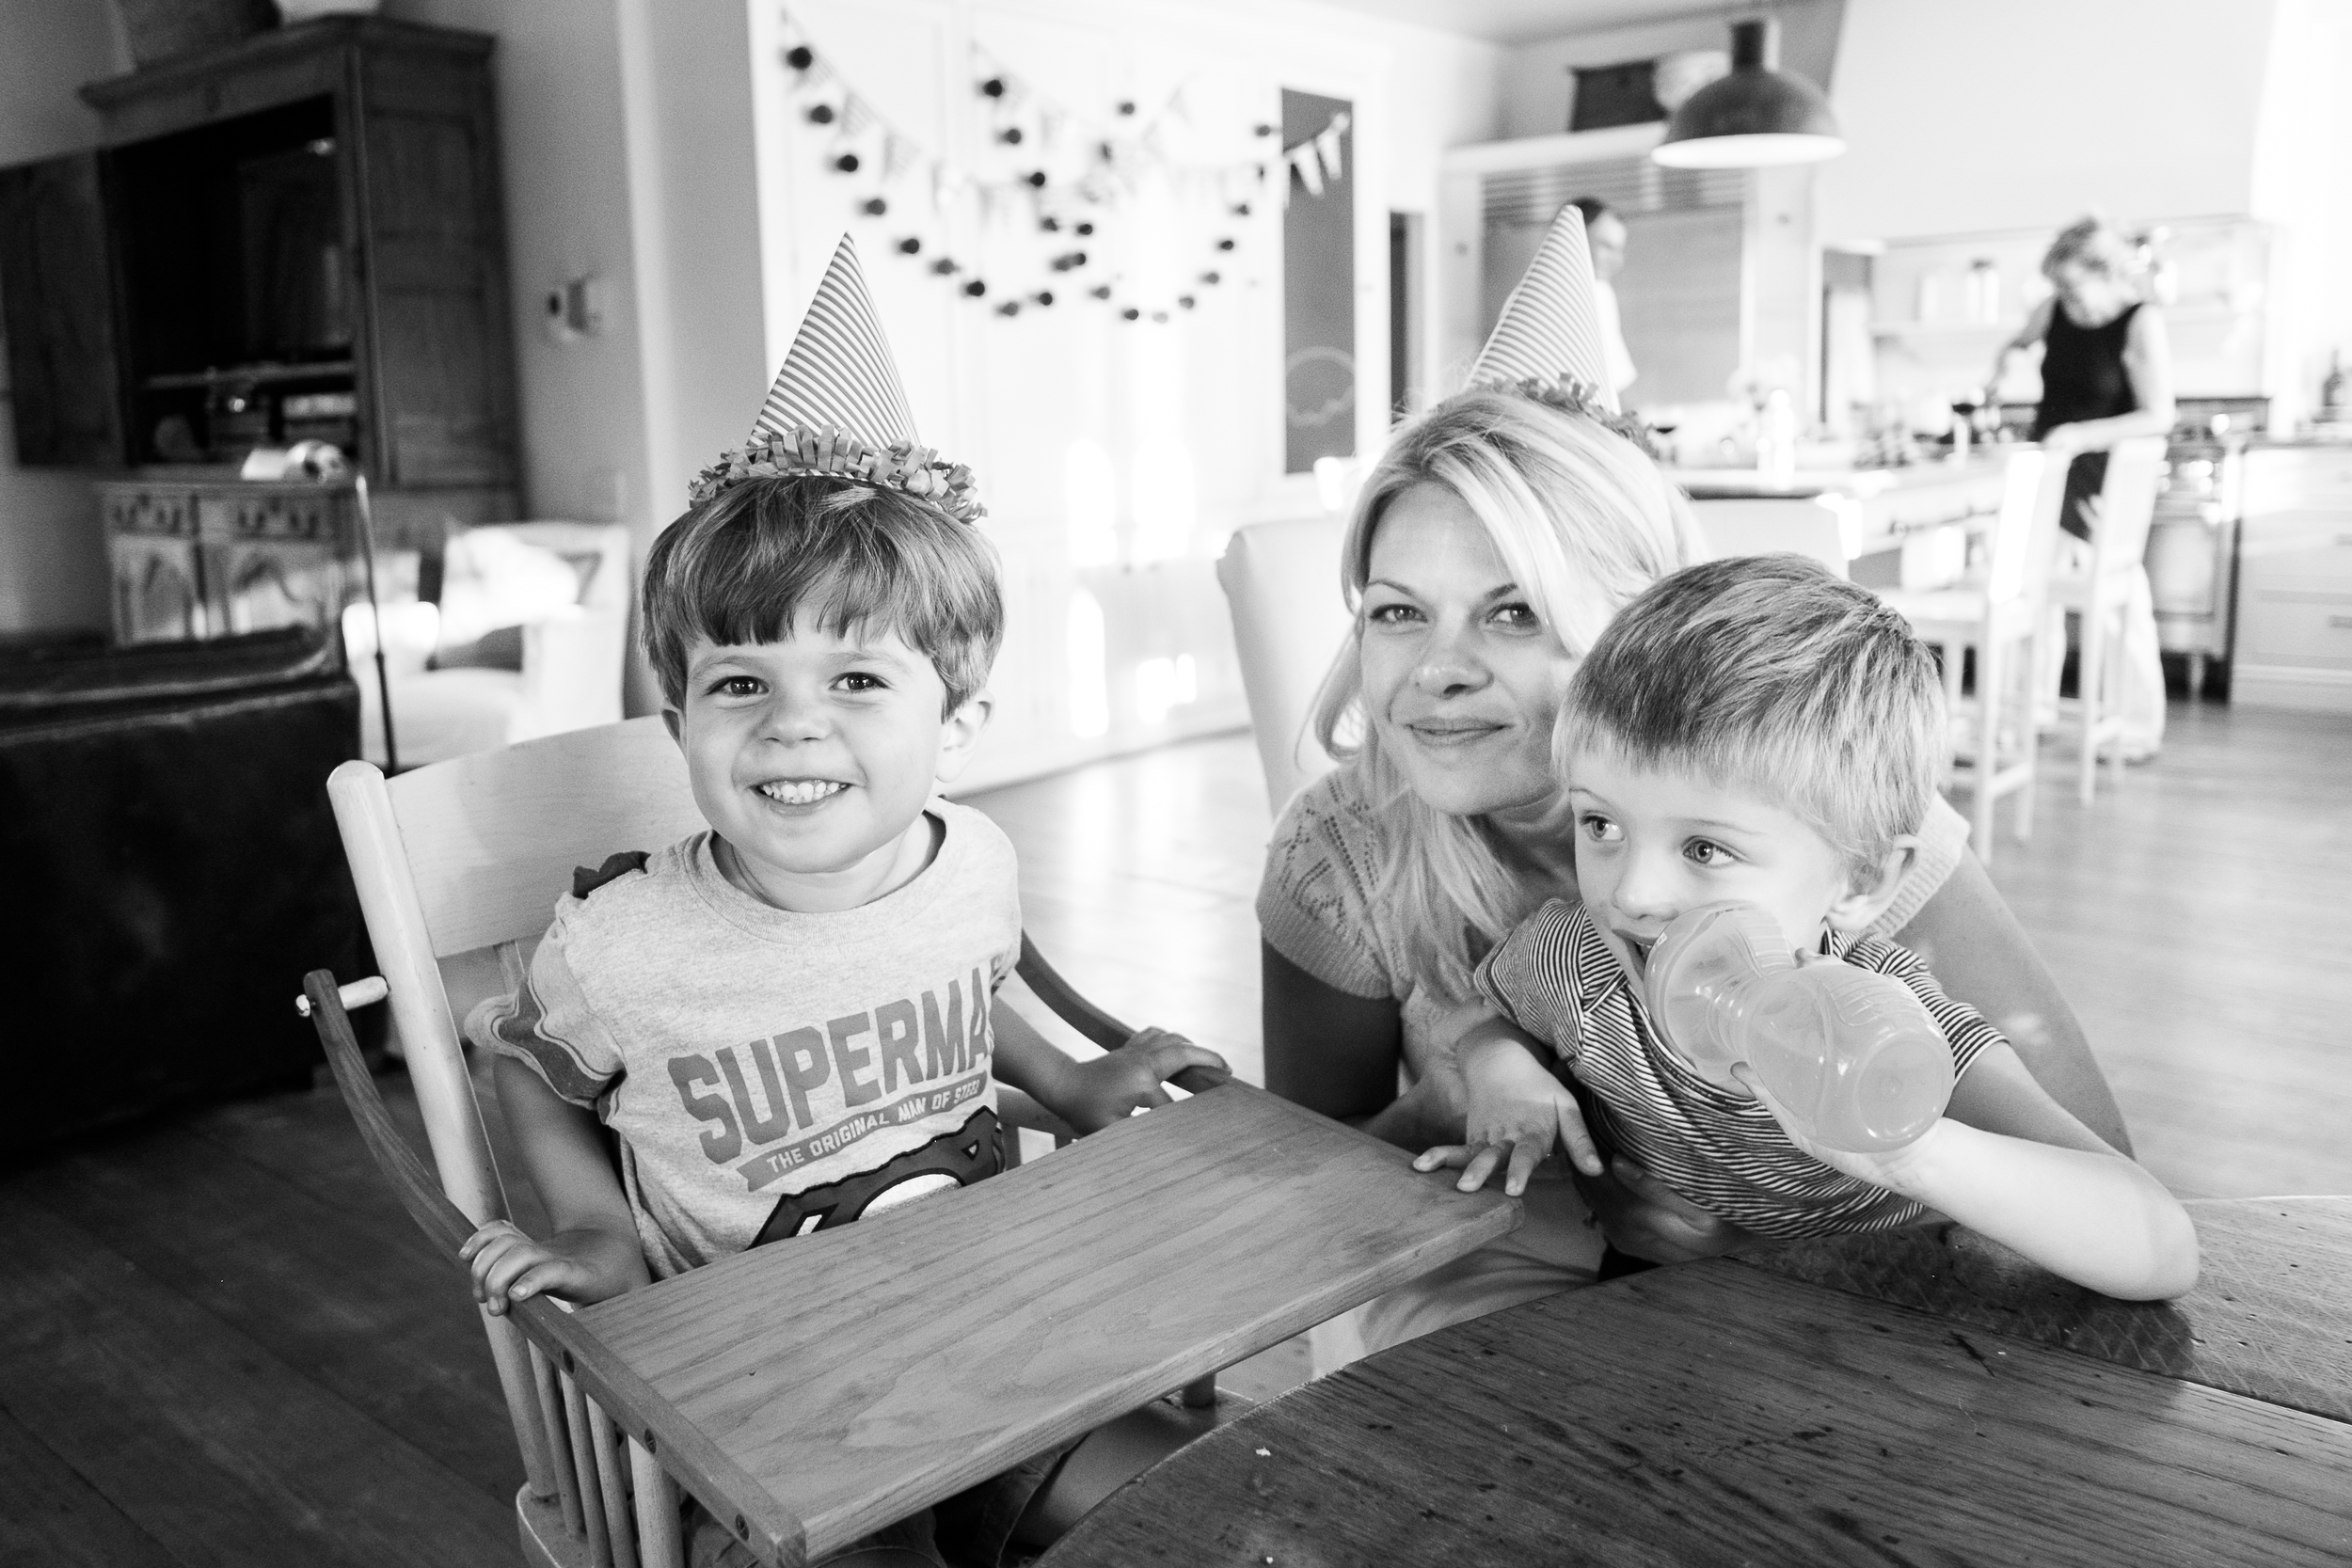 Hint: Two of these cuties celebrate birthdays this month. And one isn't Hank!